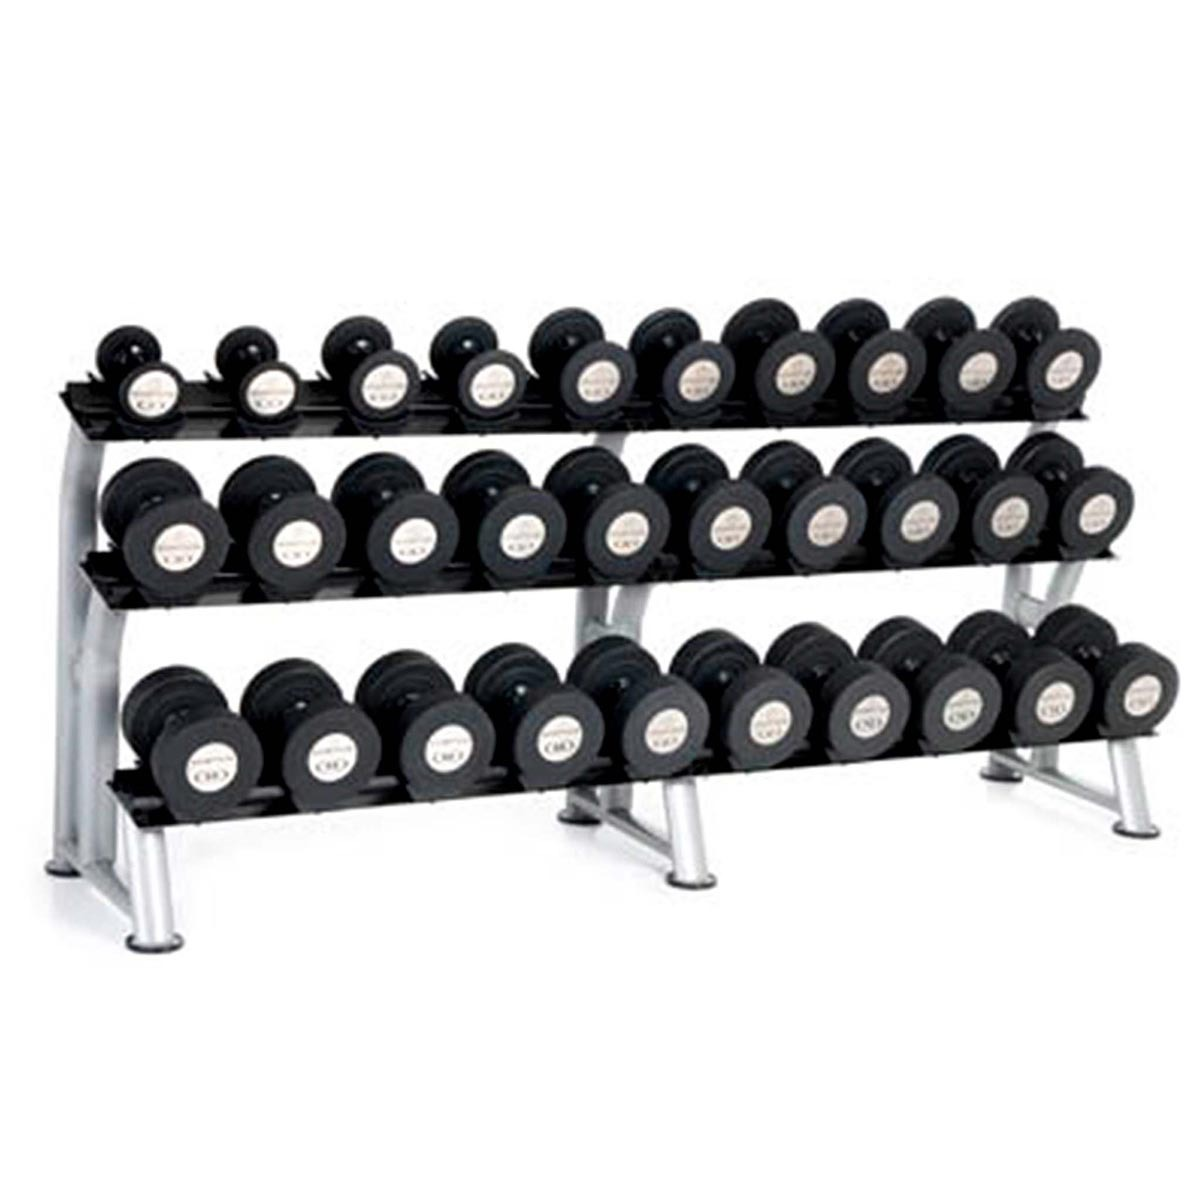 Vancouver Free Weights - Hampton Gel Grips - Lifestyle Equipment